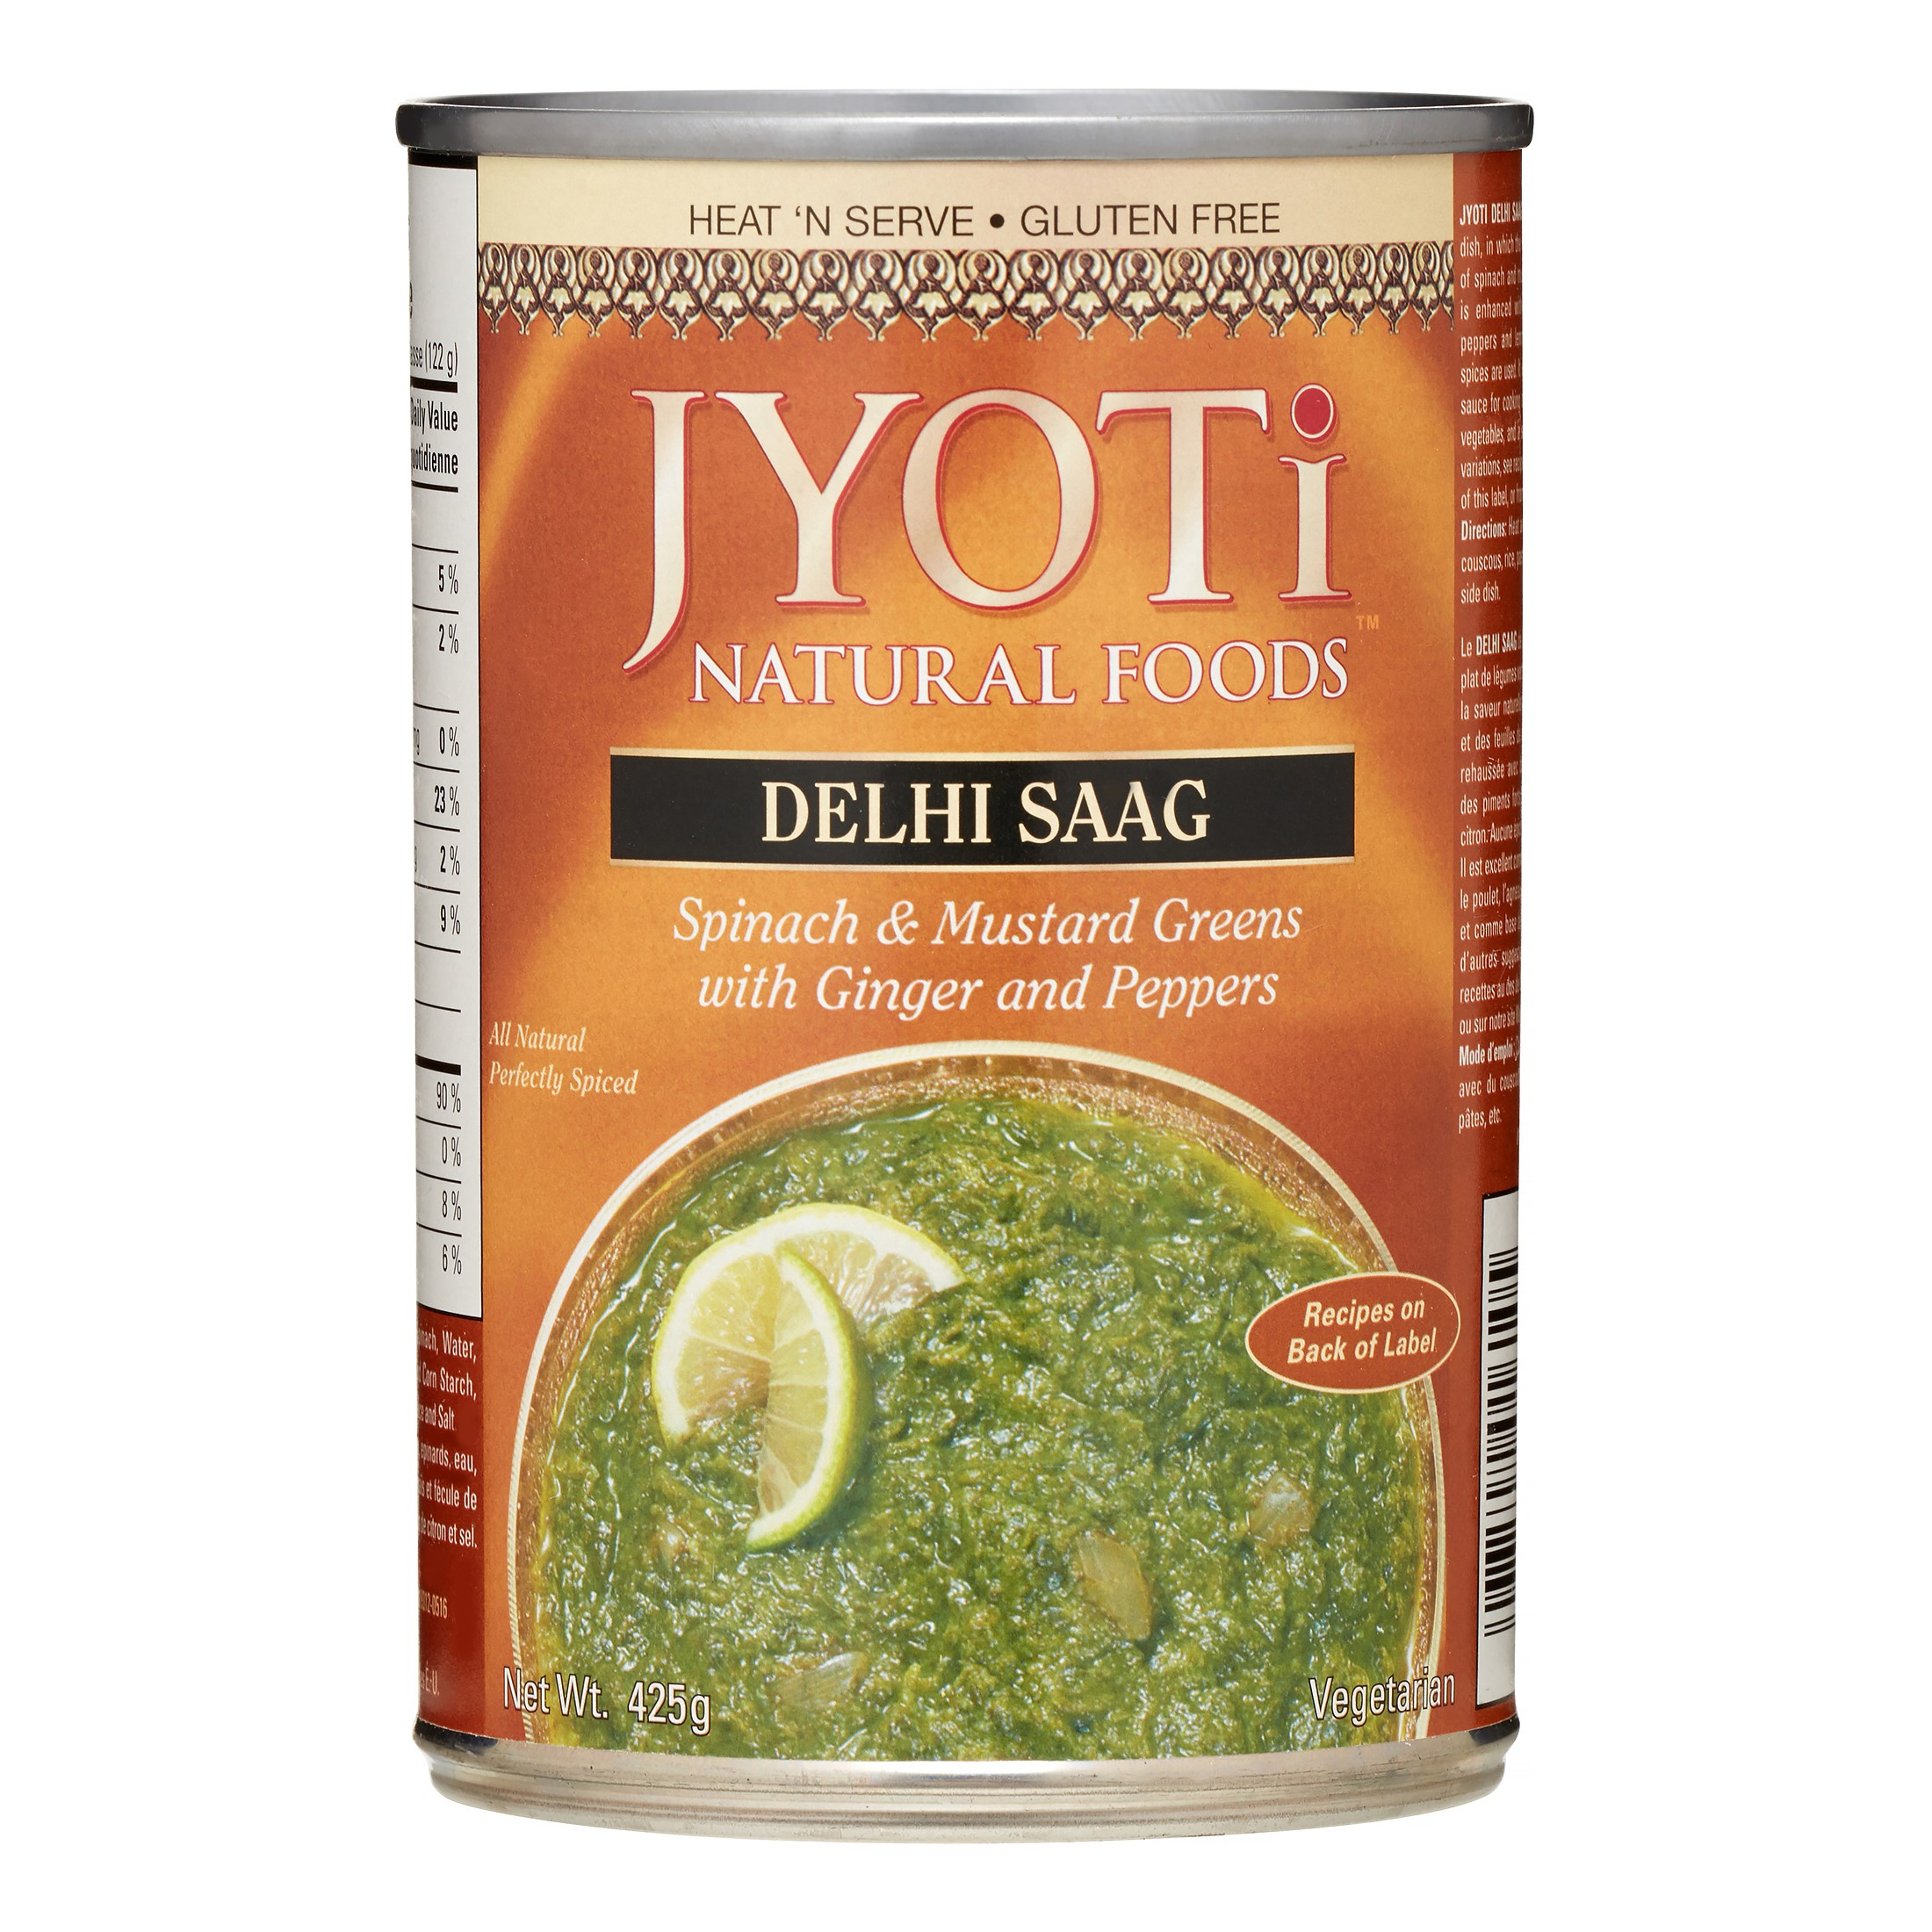 Jyoti Natural Foods Delhi Saag, Spinach & Mustard Greens with Ginger & Peppers, 15 Oz by JYOTi Natural Food